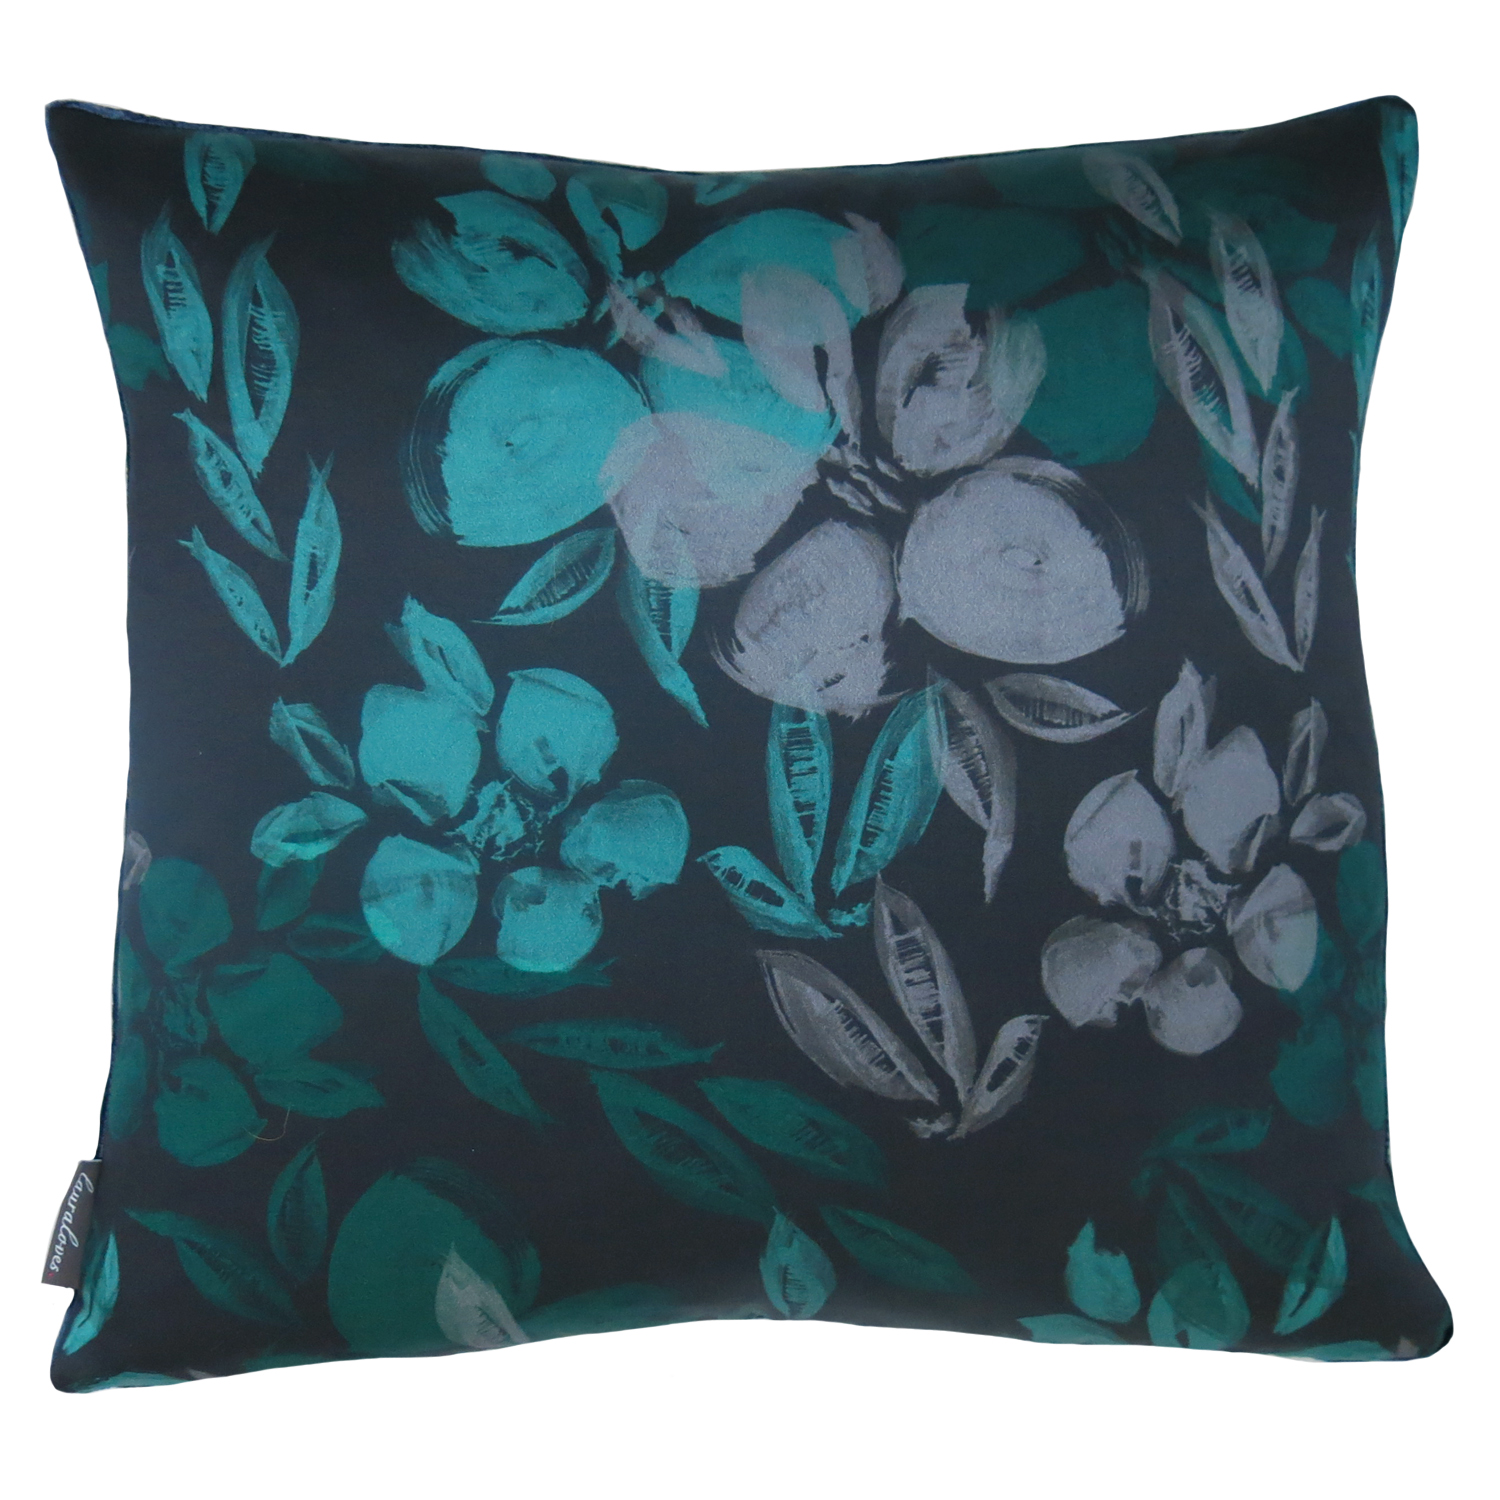 Evelyn-Floral-Silk-Cotton-Velvet-Luxury-Cushion-hand-made-blue-green-teal-size-18%22x18%22-hand-made-for-bedroom-or-sofa-designed-by-lauraloves-design.jpg